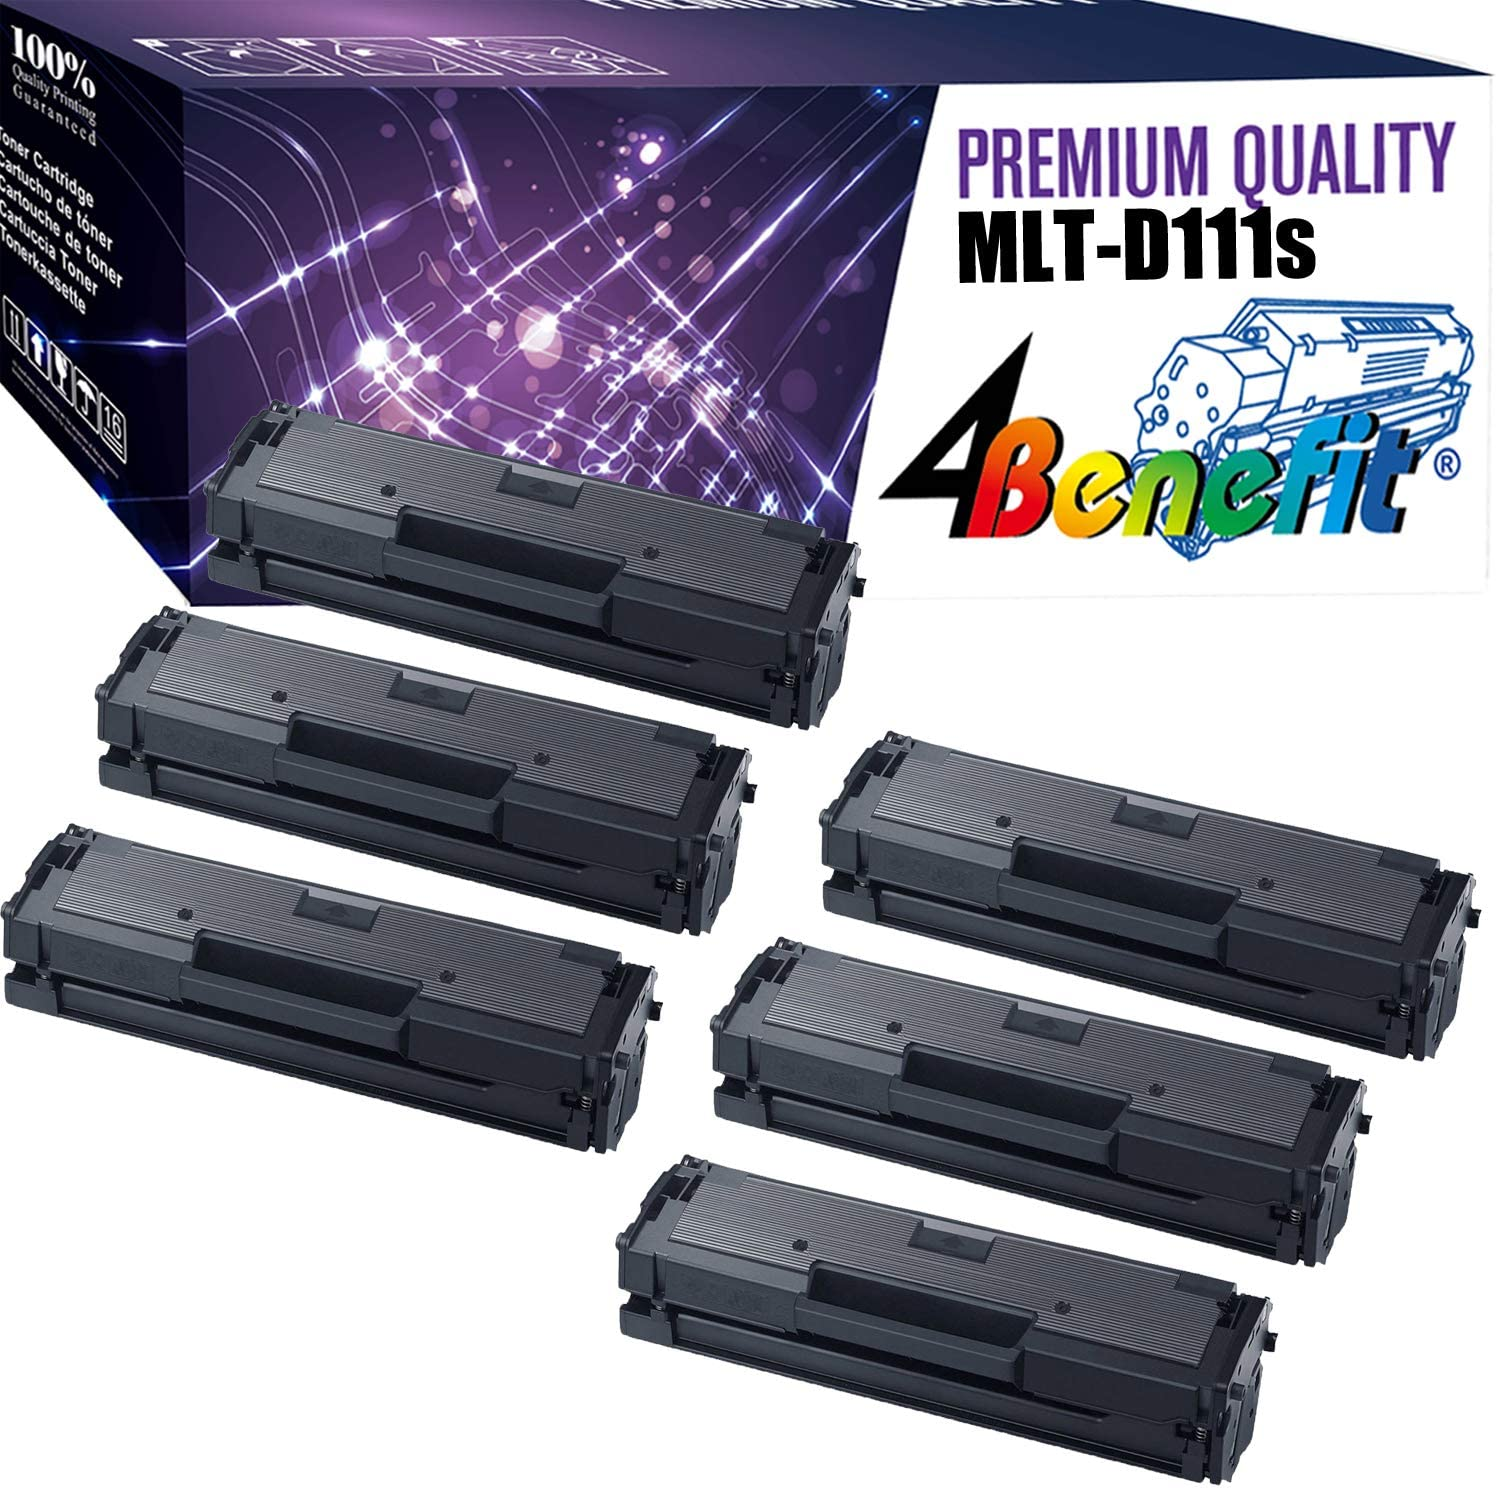 Imaging Toner Cartridge use for Samsung Xpress SL-M2022W SL-M2026 SL-M2070F Printer Black MLT-D111S 2-Pack Compatible High Yield D111S